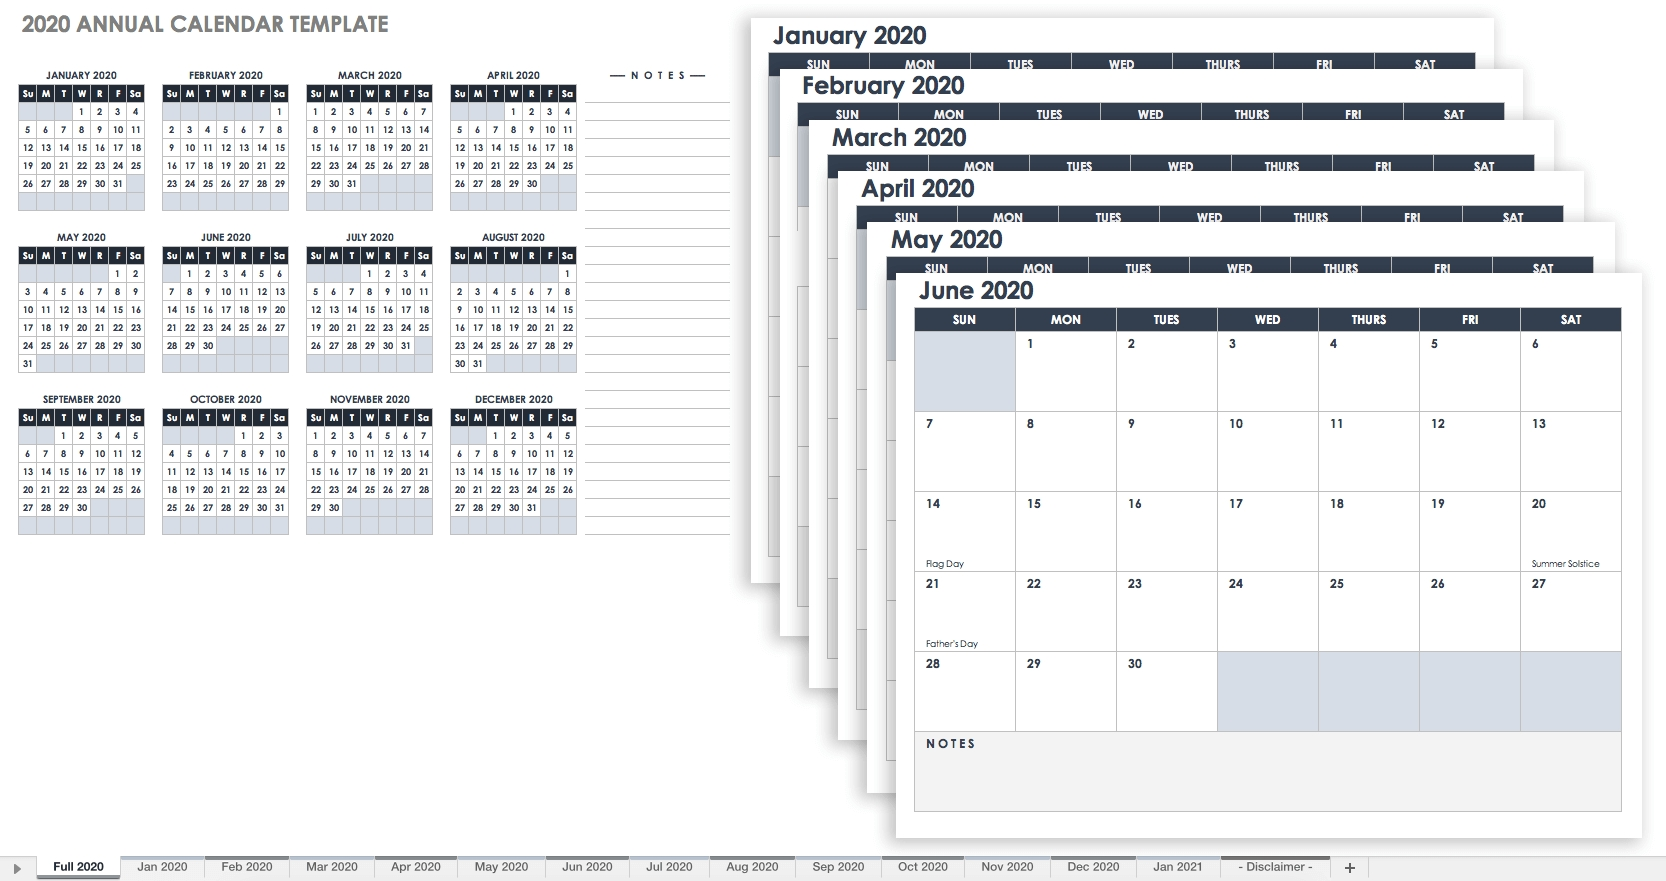 Free Blank Calendar Templates - Smartsheet with Type In And Printable Calendar With Hours